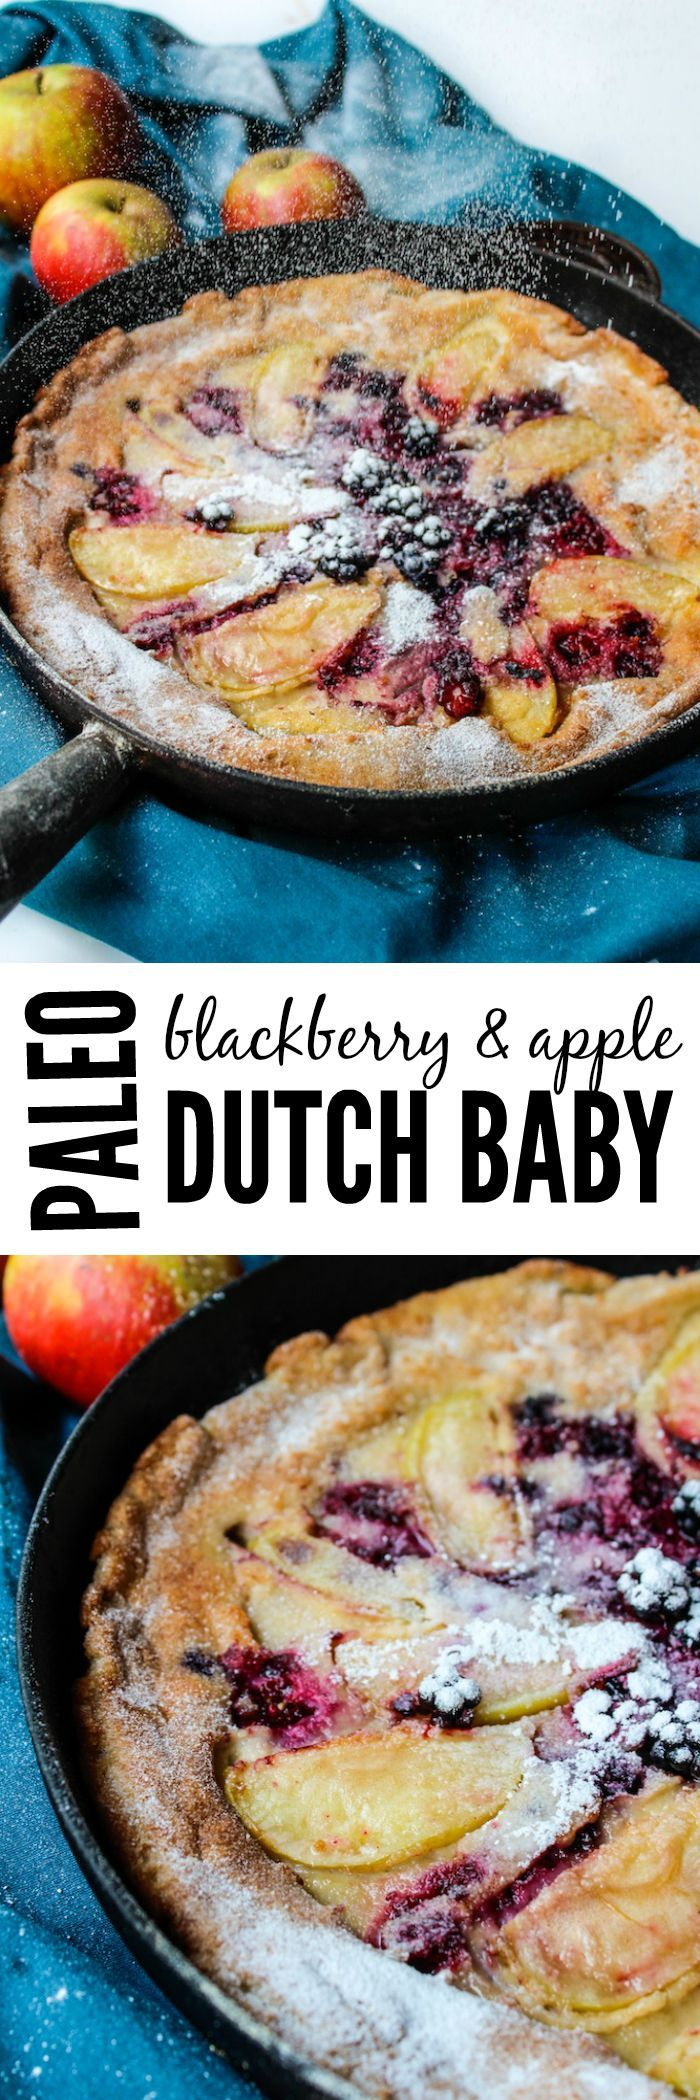 Blackberry & Apple Paleo Dutch Baby www.my-paleo.com